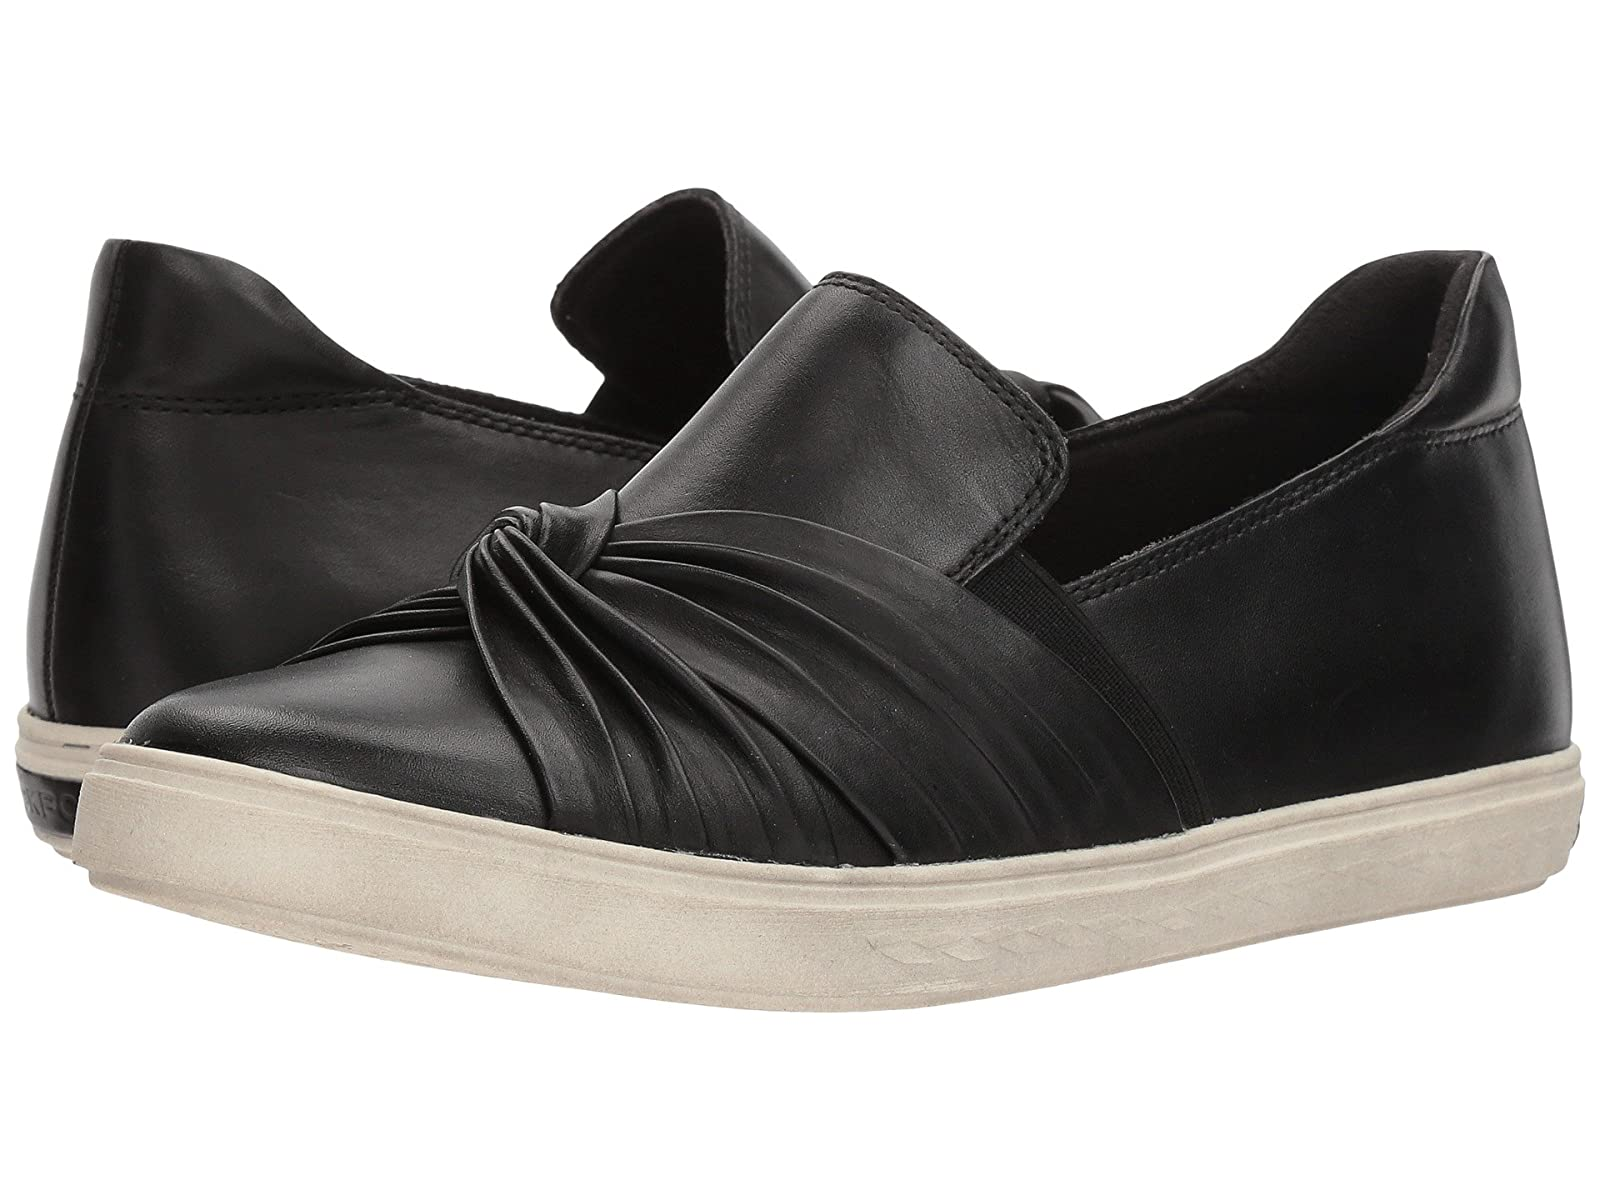 Rockport Cobb Hill Collection Cobb Hill Willa Bow Slip-OnAtmospheric grades have affordable shoes